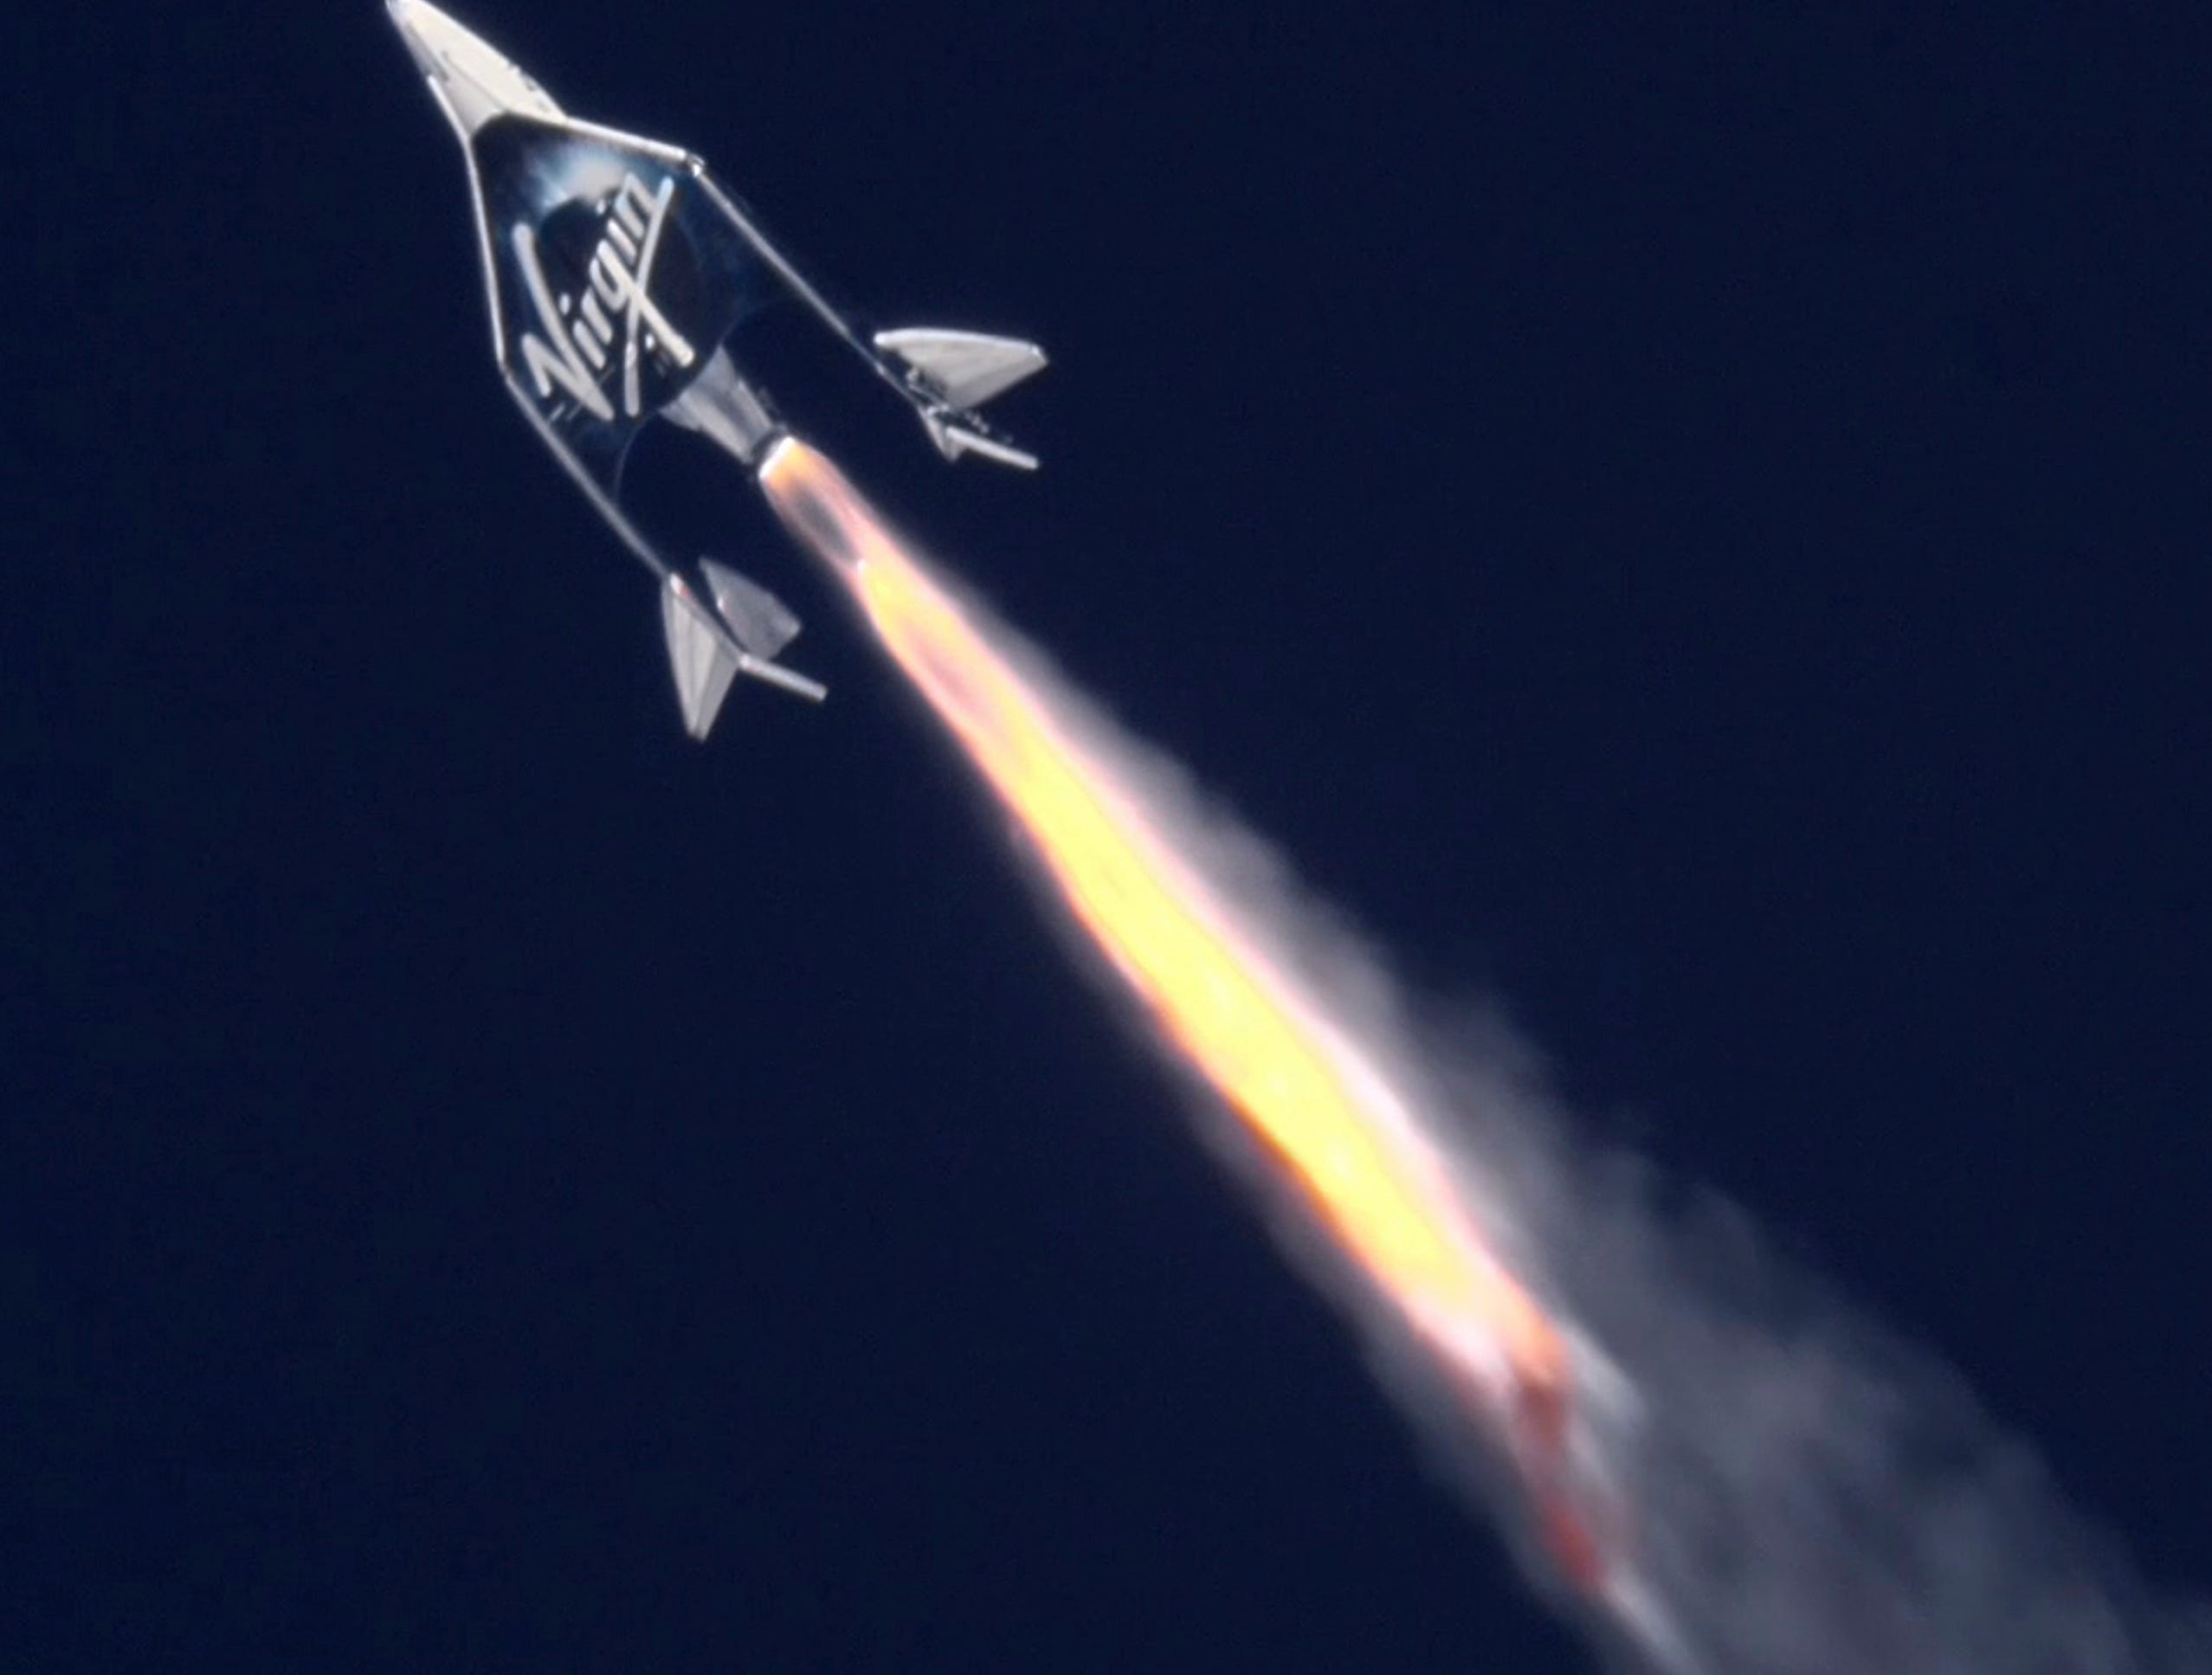 This is the Virgin Galactic spaceship VSS Unityafter release from the WhiteKnightToo launch vehicle as it heads towards spaced over Mojave, Calif.  Feb. 33, 2019. According to the company the vehicle made its second successful space flight with three astronauts aboard as the hybrid rocket motor propelled the spaceship at Mach 3.04 to an apogee of 55.87 miles above the earth.